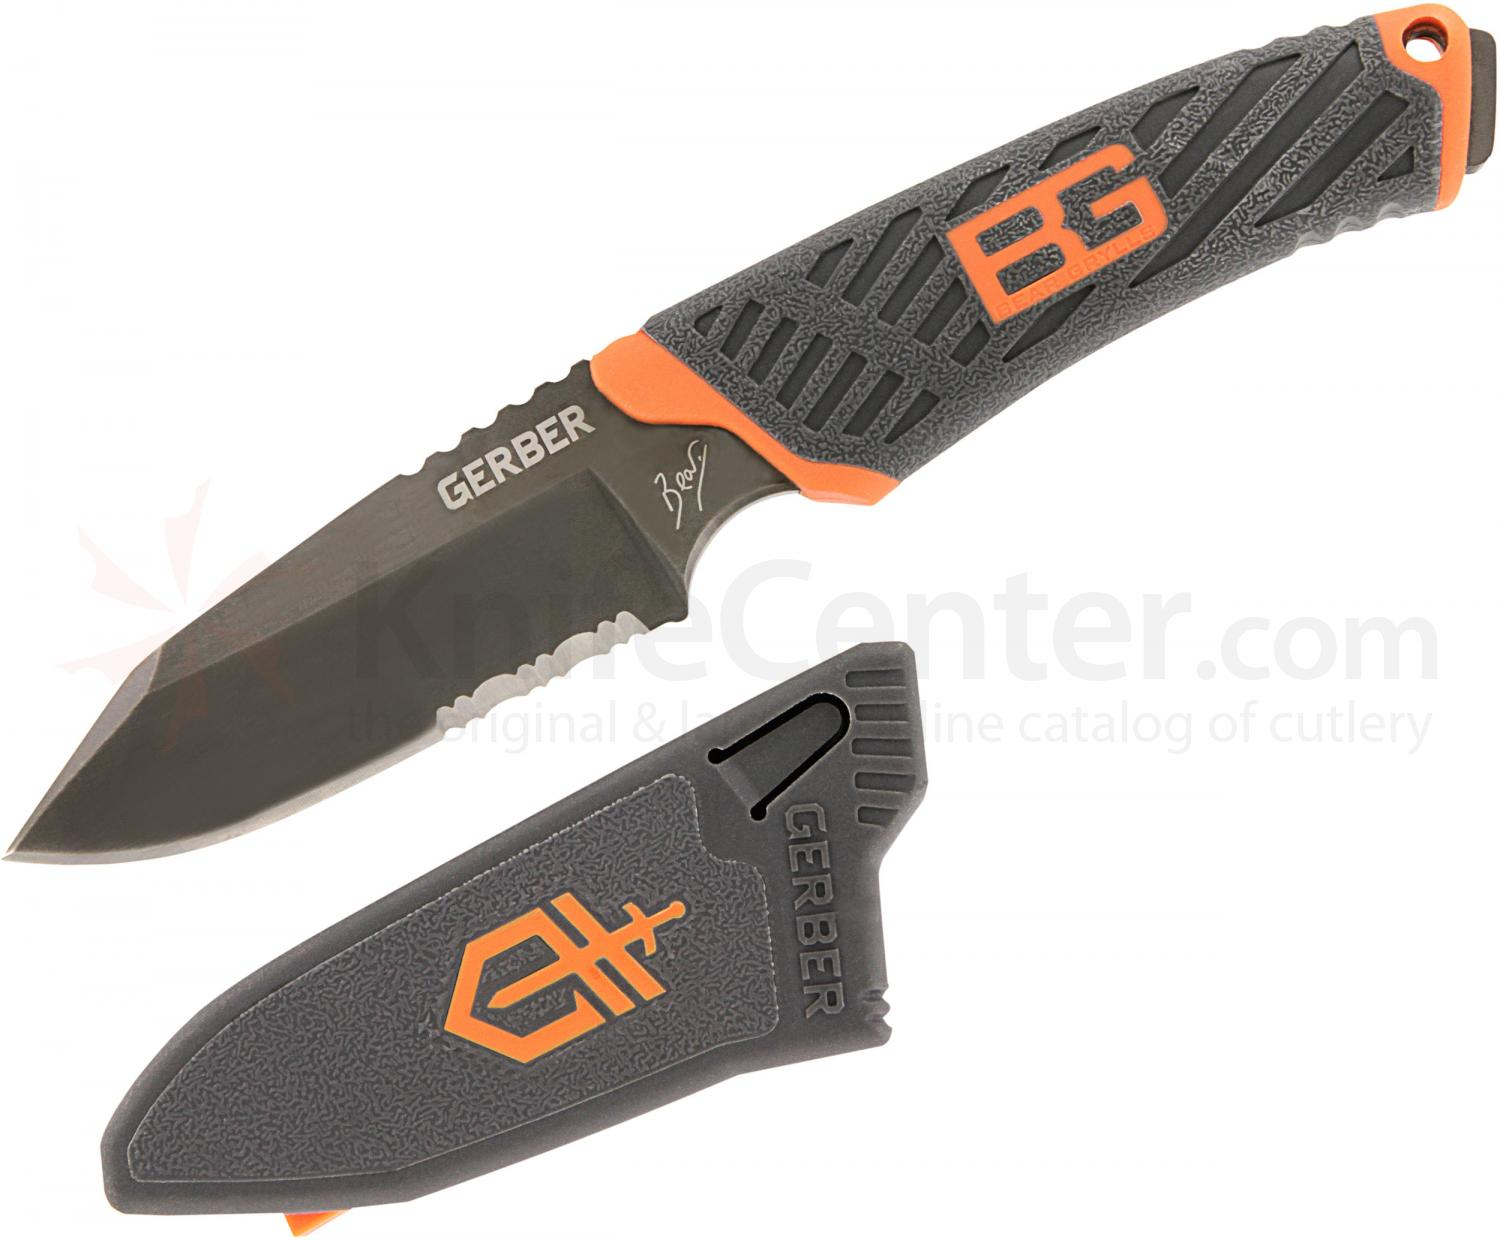 Gerber 31-001066 Bear Grylls Compact Fixed 3.4 inch Combo Blade, Rubber Handles